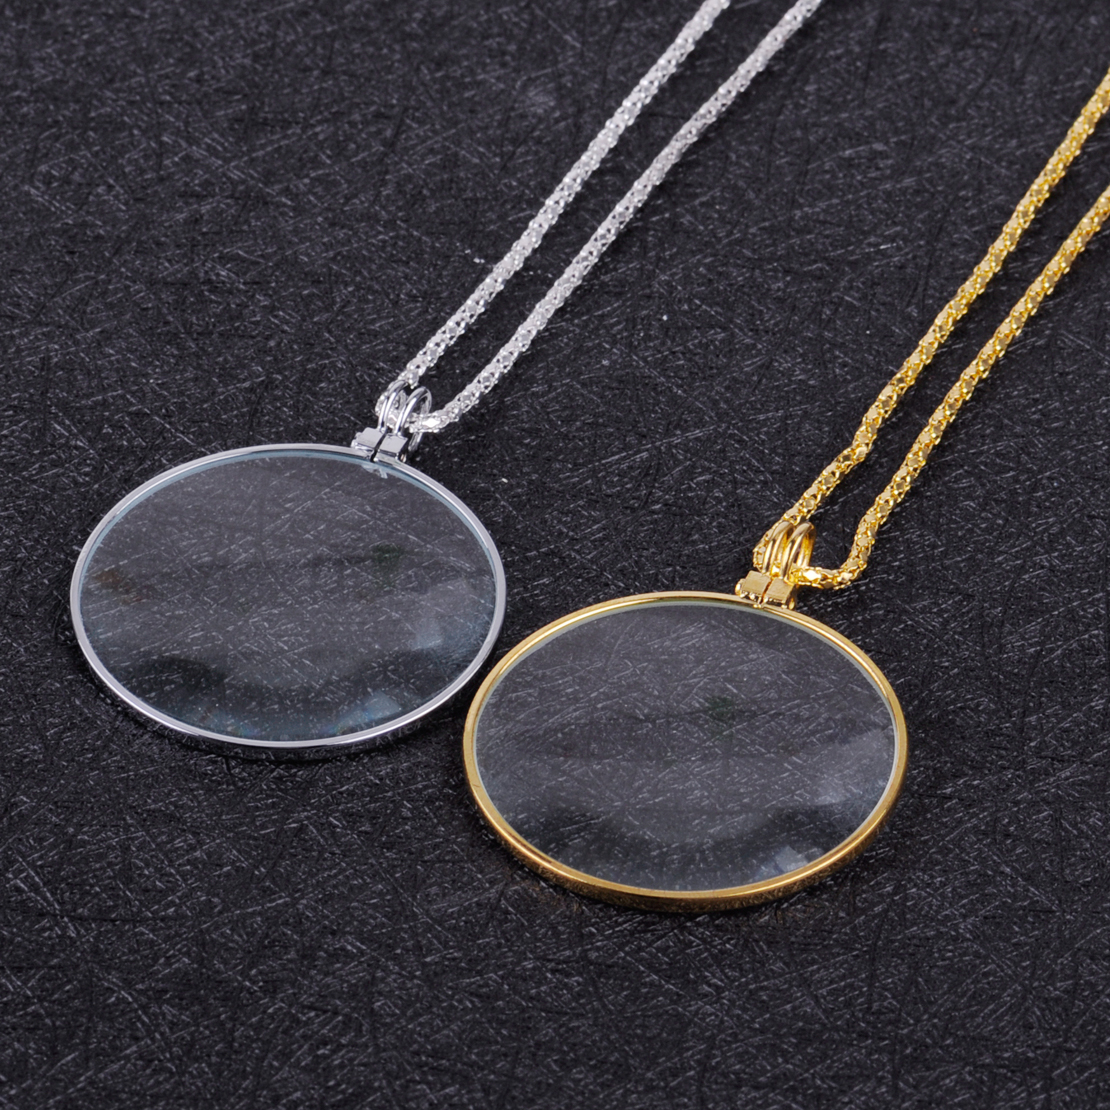 ... Pendant Gift Silver Intl. Useful Monocle Lens Necklace 5x Magnifier Coin Magnifying Glass Source Women Fashion 5 Times Magnifier Magnifying